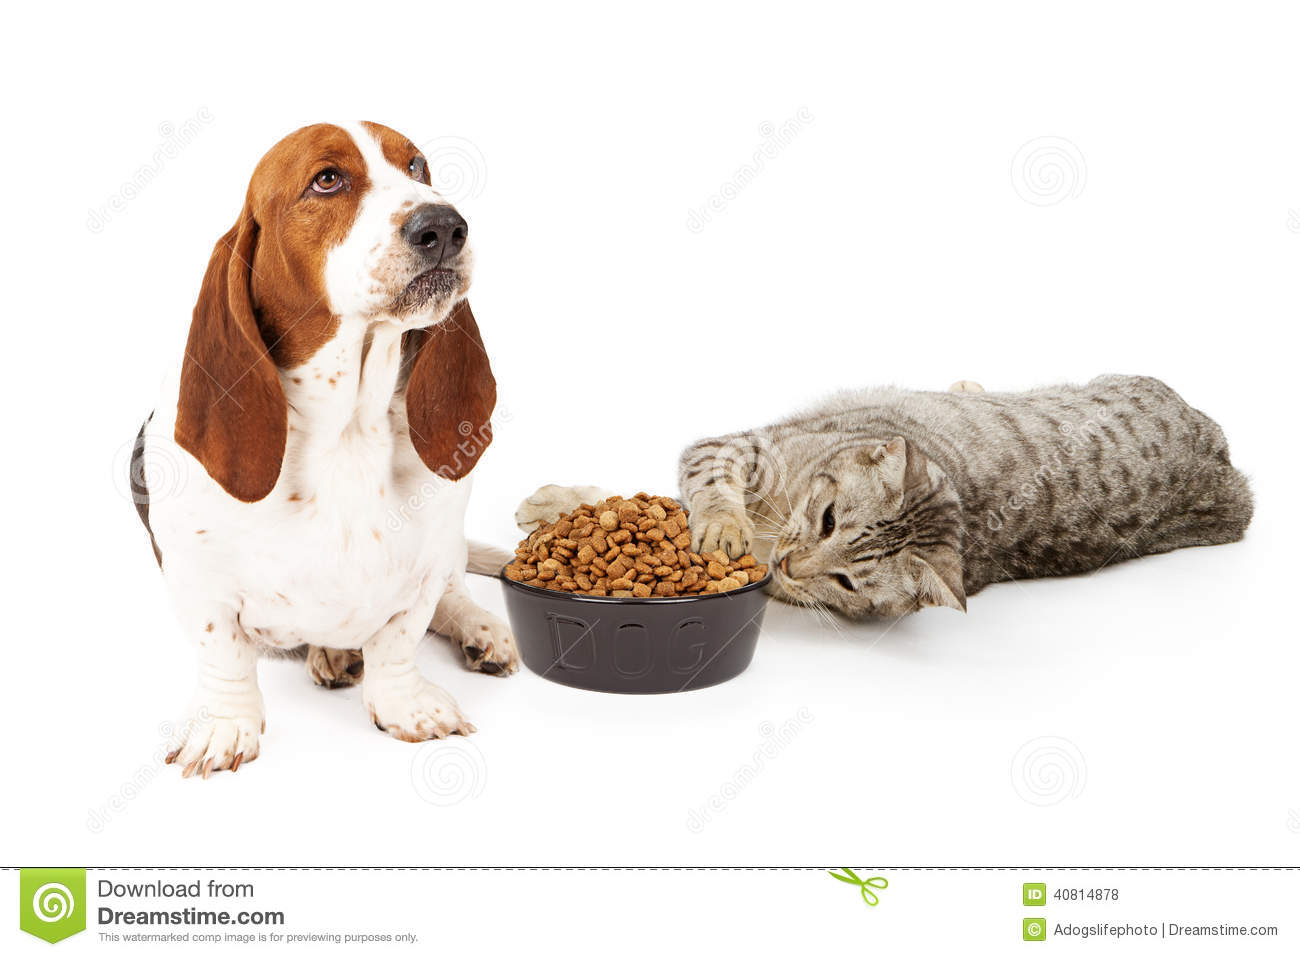 How To Make Canned Dog Food Using Dry Dog Food